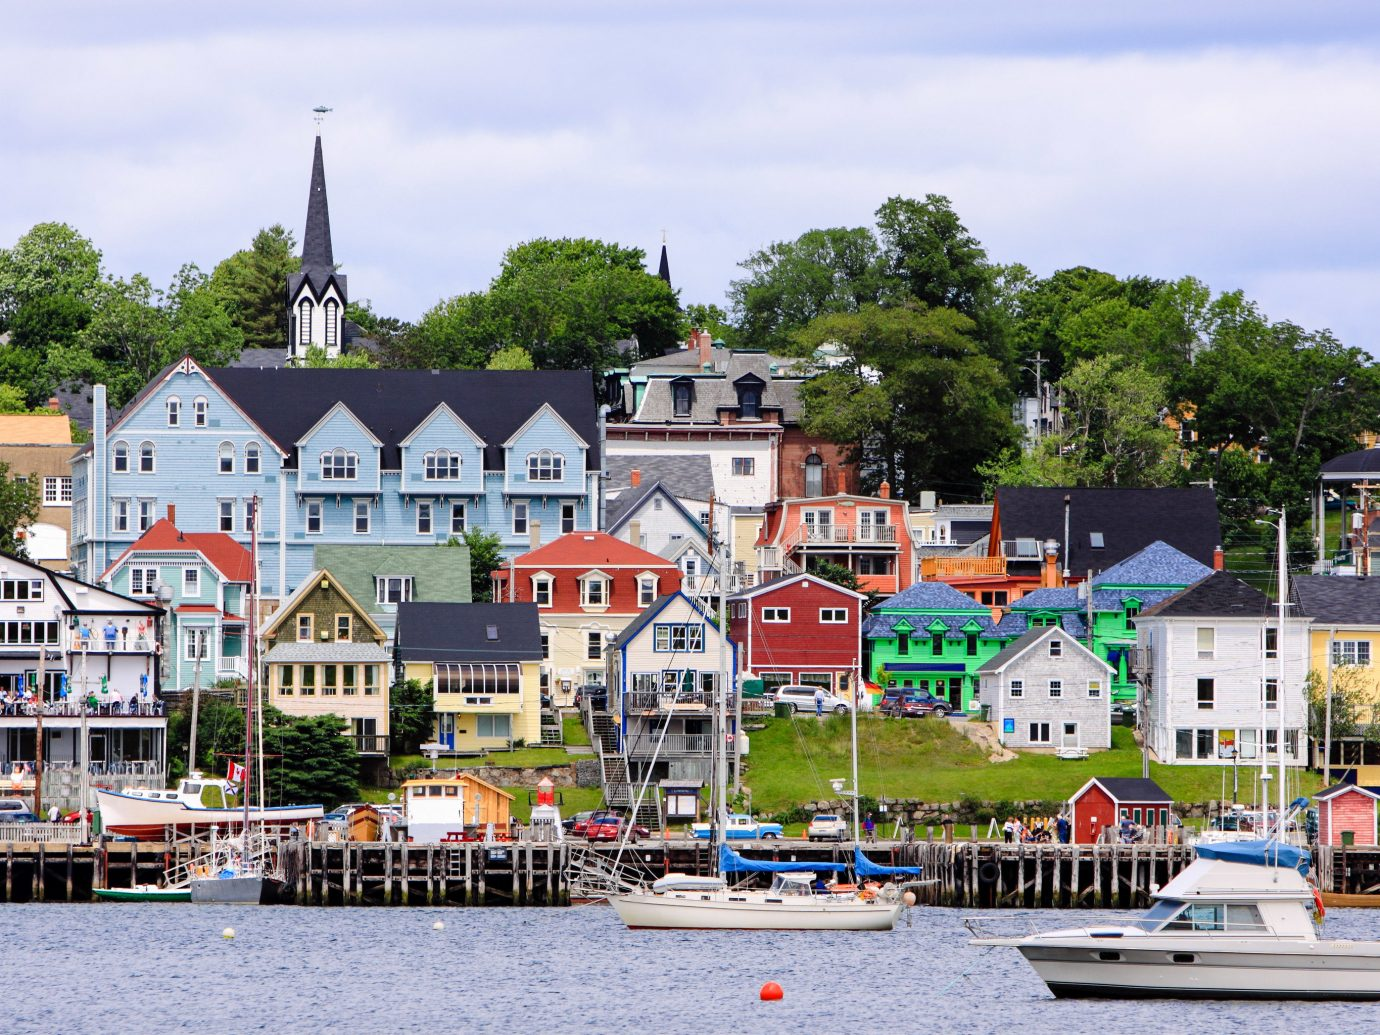 Trip Ideas outdoor Boat water Town geographical feature scene neighbourhood residential area human settlement River vacation cityscape waterway vehicle Harbor Coast Village docked several